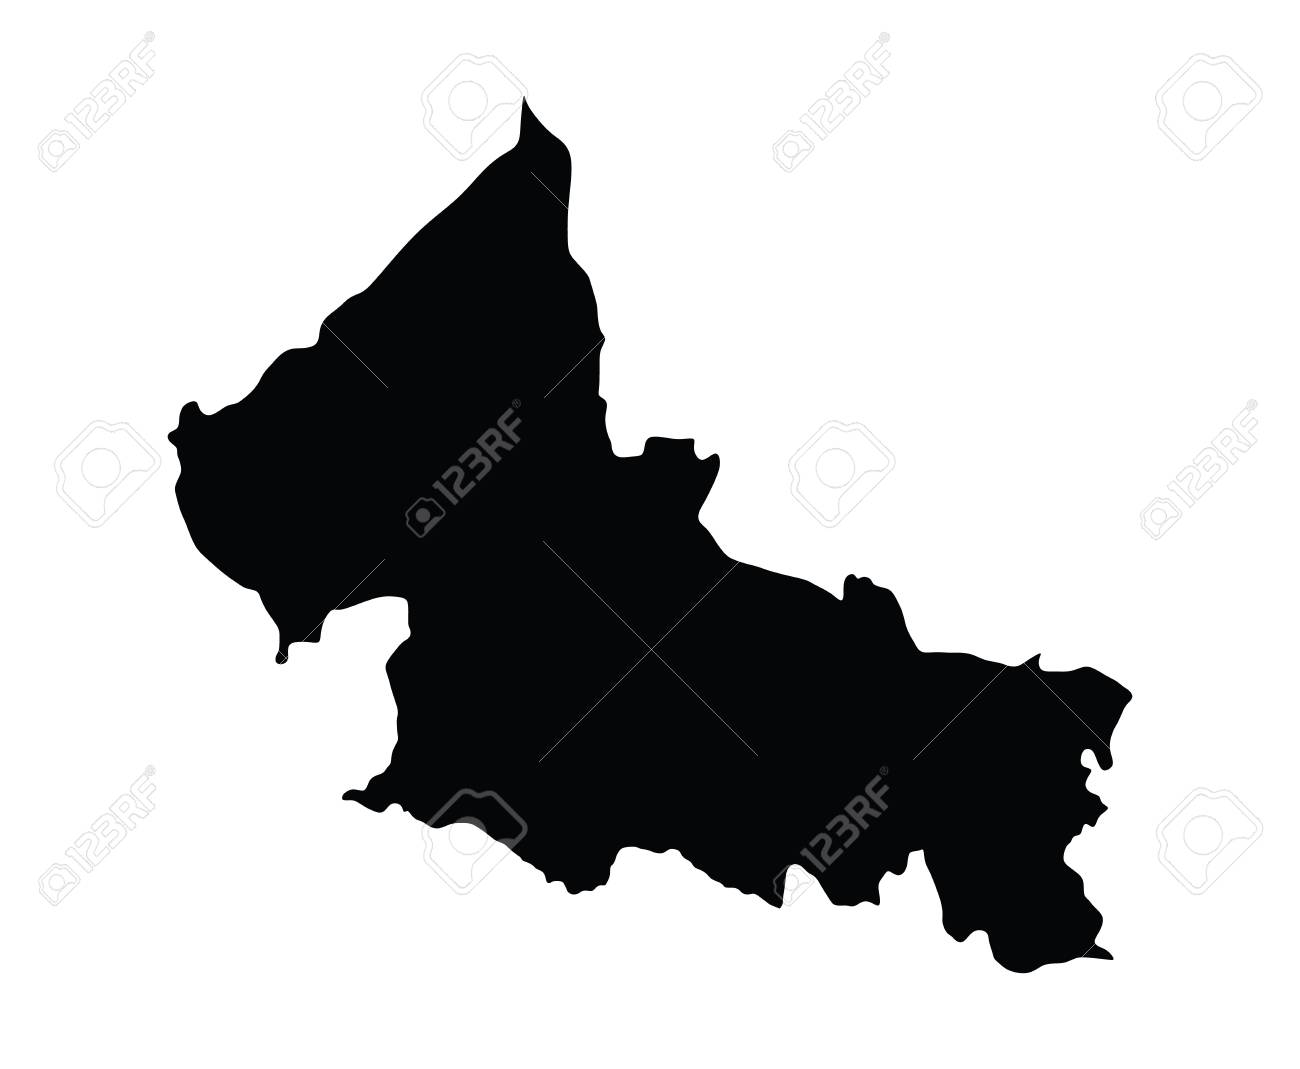 San Luis Potosi, Mexico, vector map isolated on white background. High detailed silhouette illustration. - 61575331